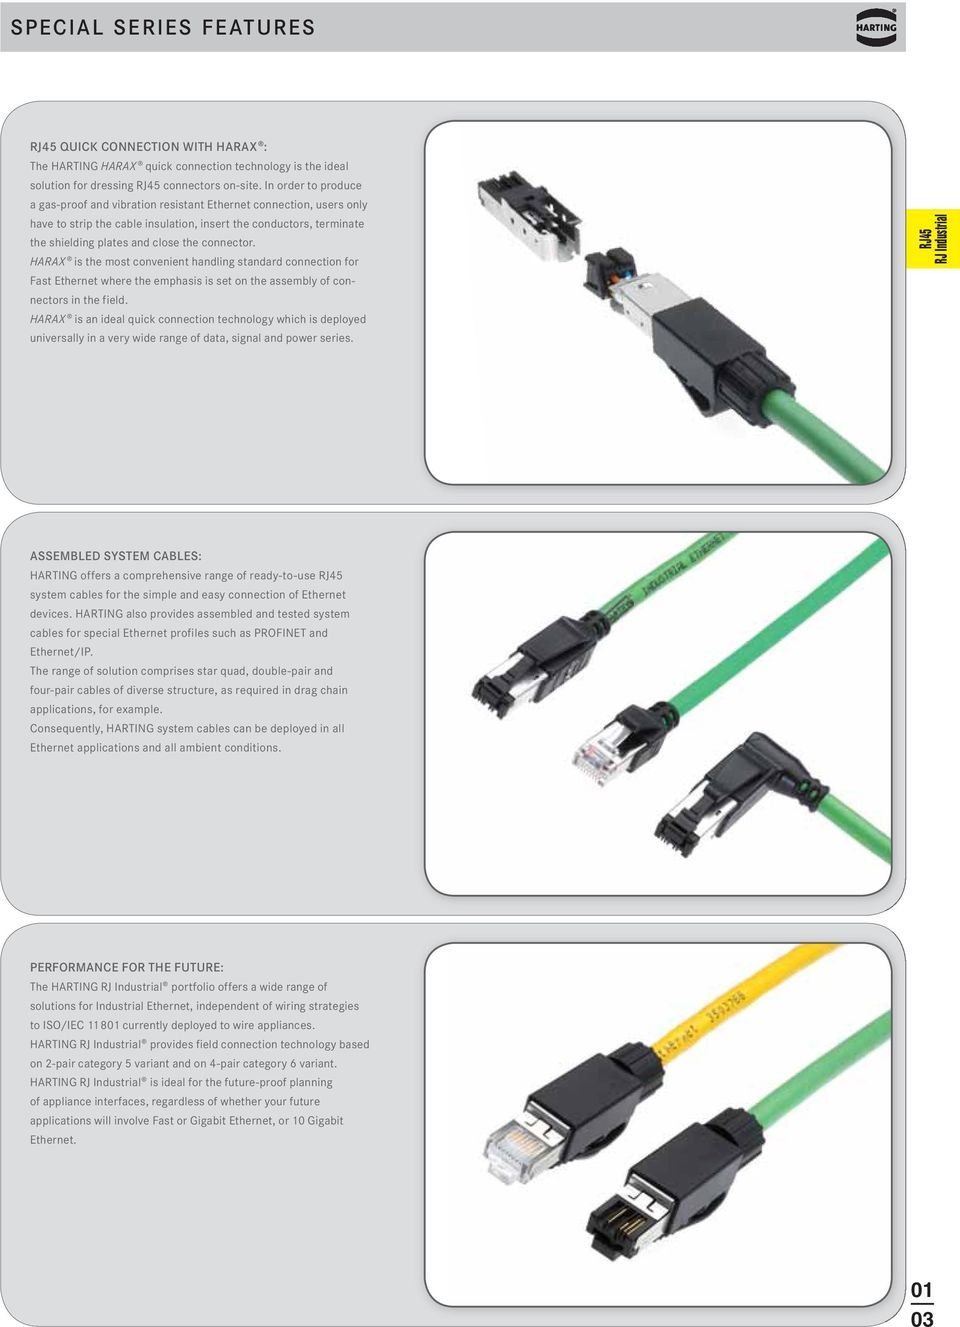 connector. HARAX is the most convenient handling standard connection for Fast Ethernet where the emphasis is set on the assembly of connectors in the field.